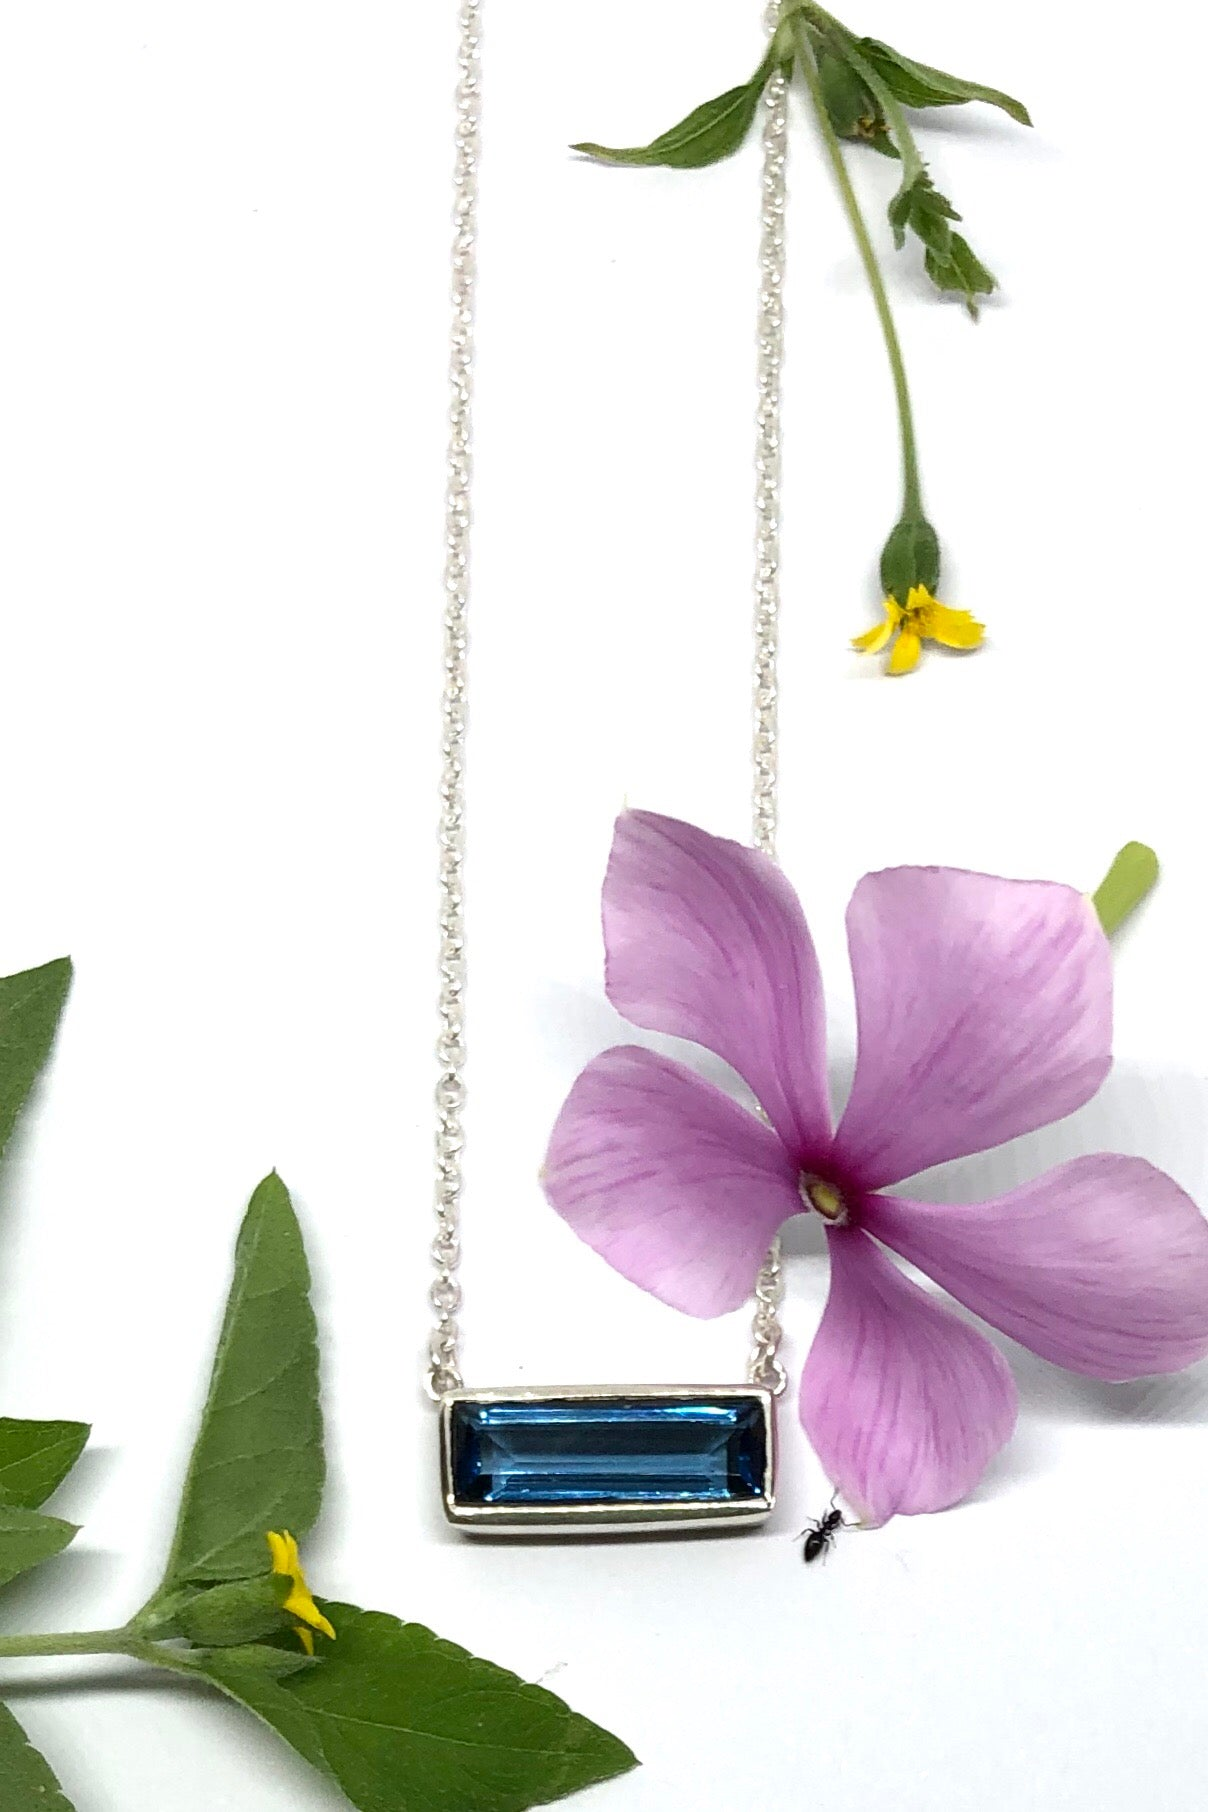 The Oracle Necklace Gems in Montana Blue is delicate little rectangle design, approximate 1.5cm wide, 925 solid silver surround and comes on a 925 silver chain.